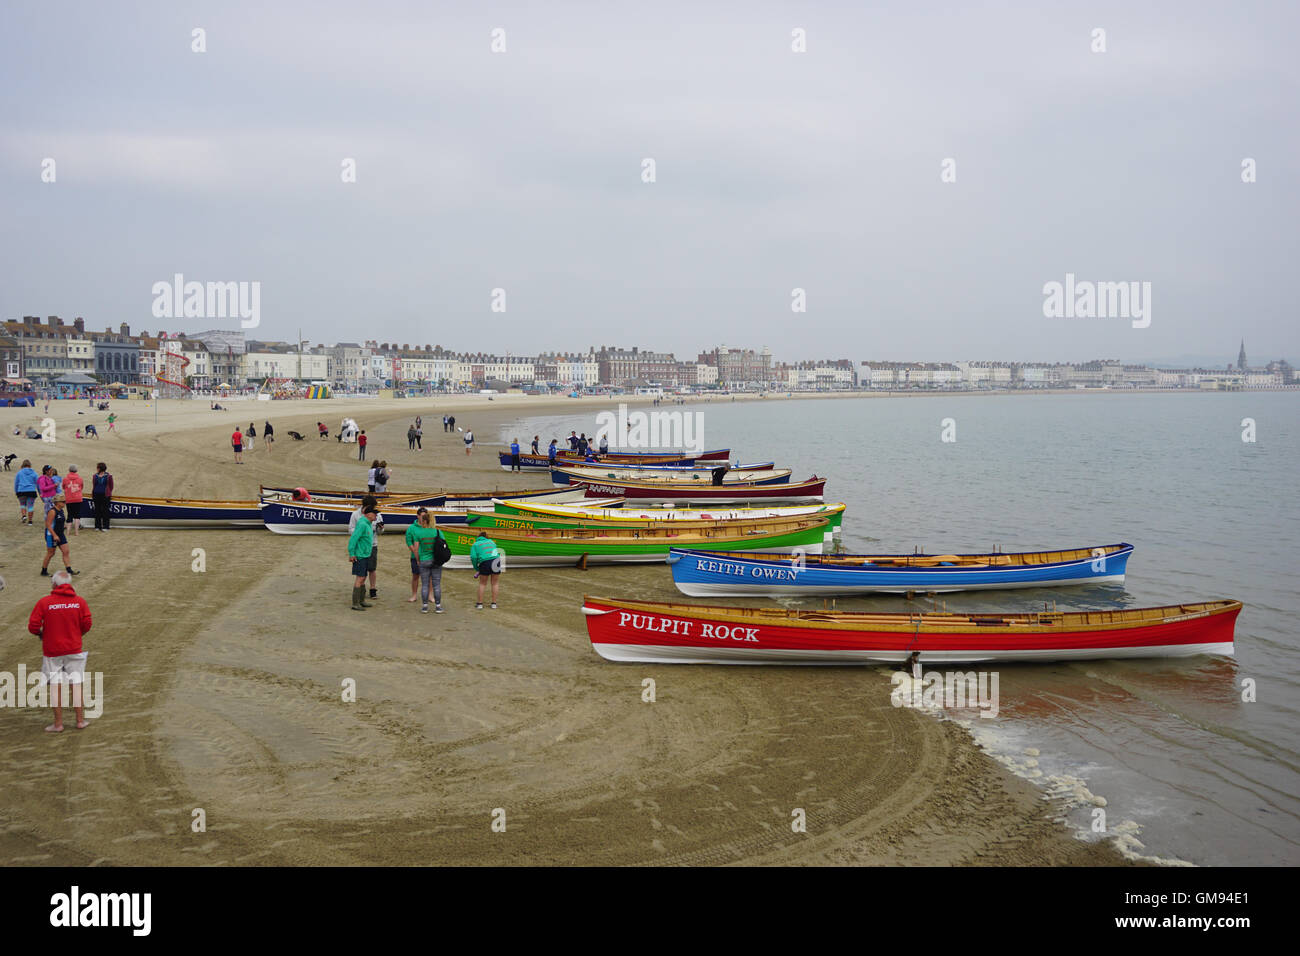 Rowing Gigs on Weymouth beach for a gig race. - Stock Image